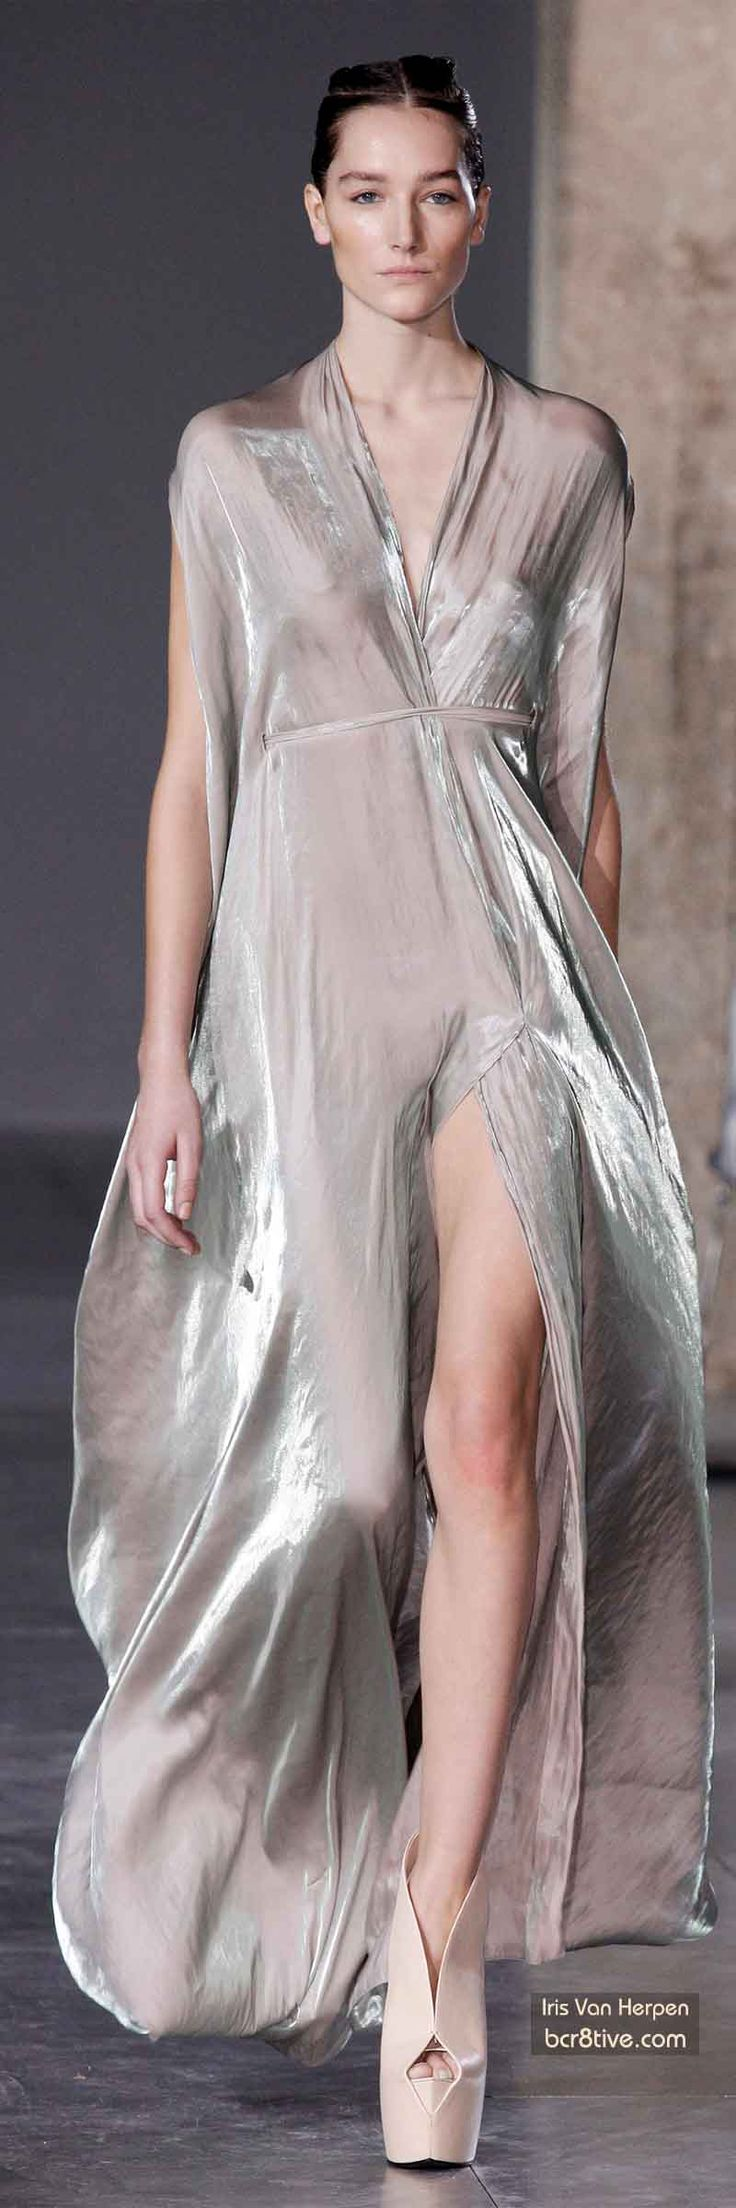 Best Gowns of Fall 2014 Fashion Week International - Part 6